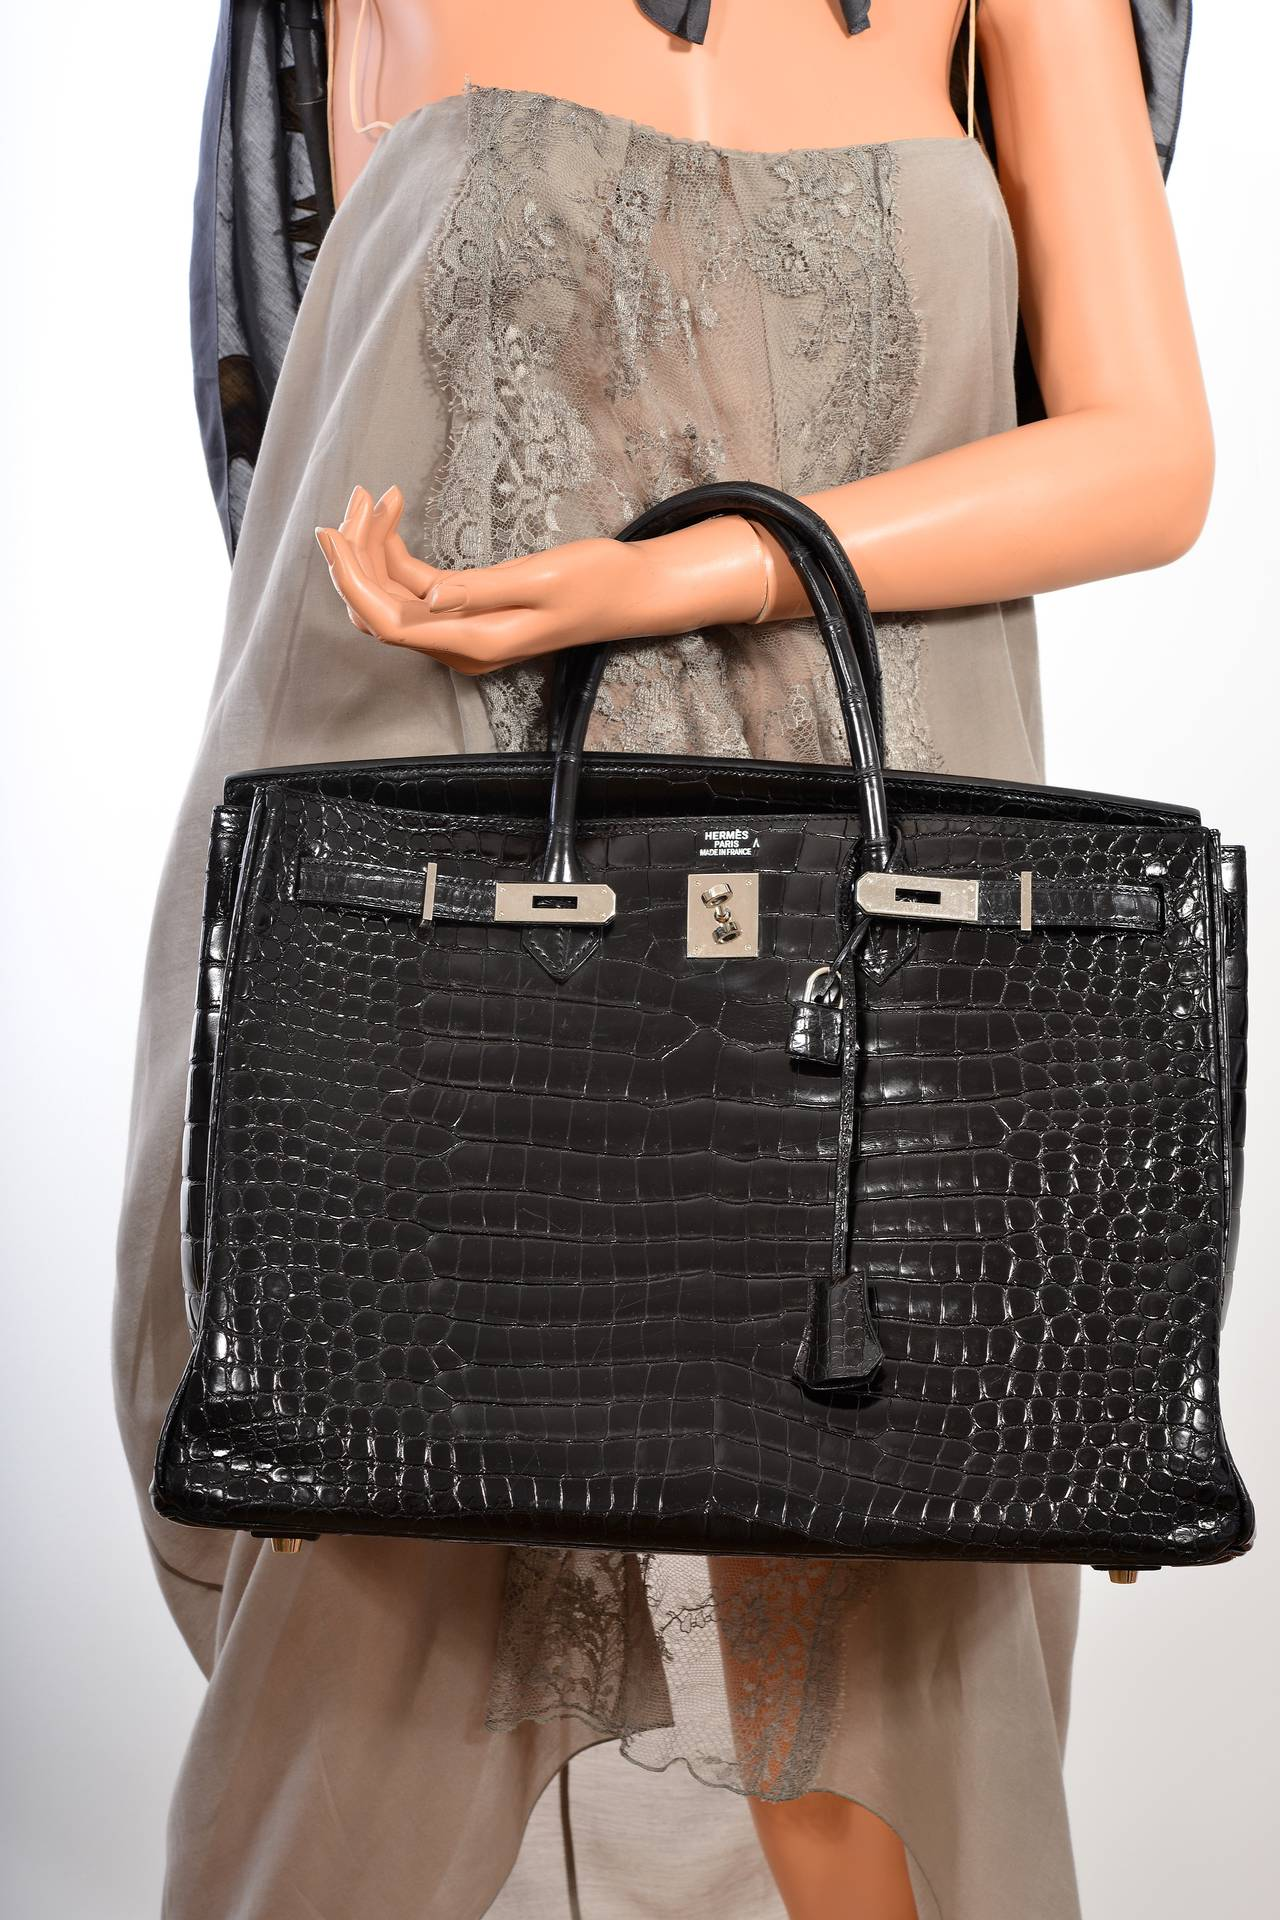 hermes shoulder bags - hermes birkin bag 40cm black crocodile porosus phw dream bag ...